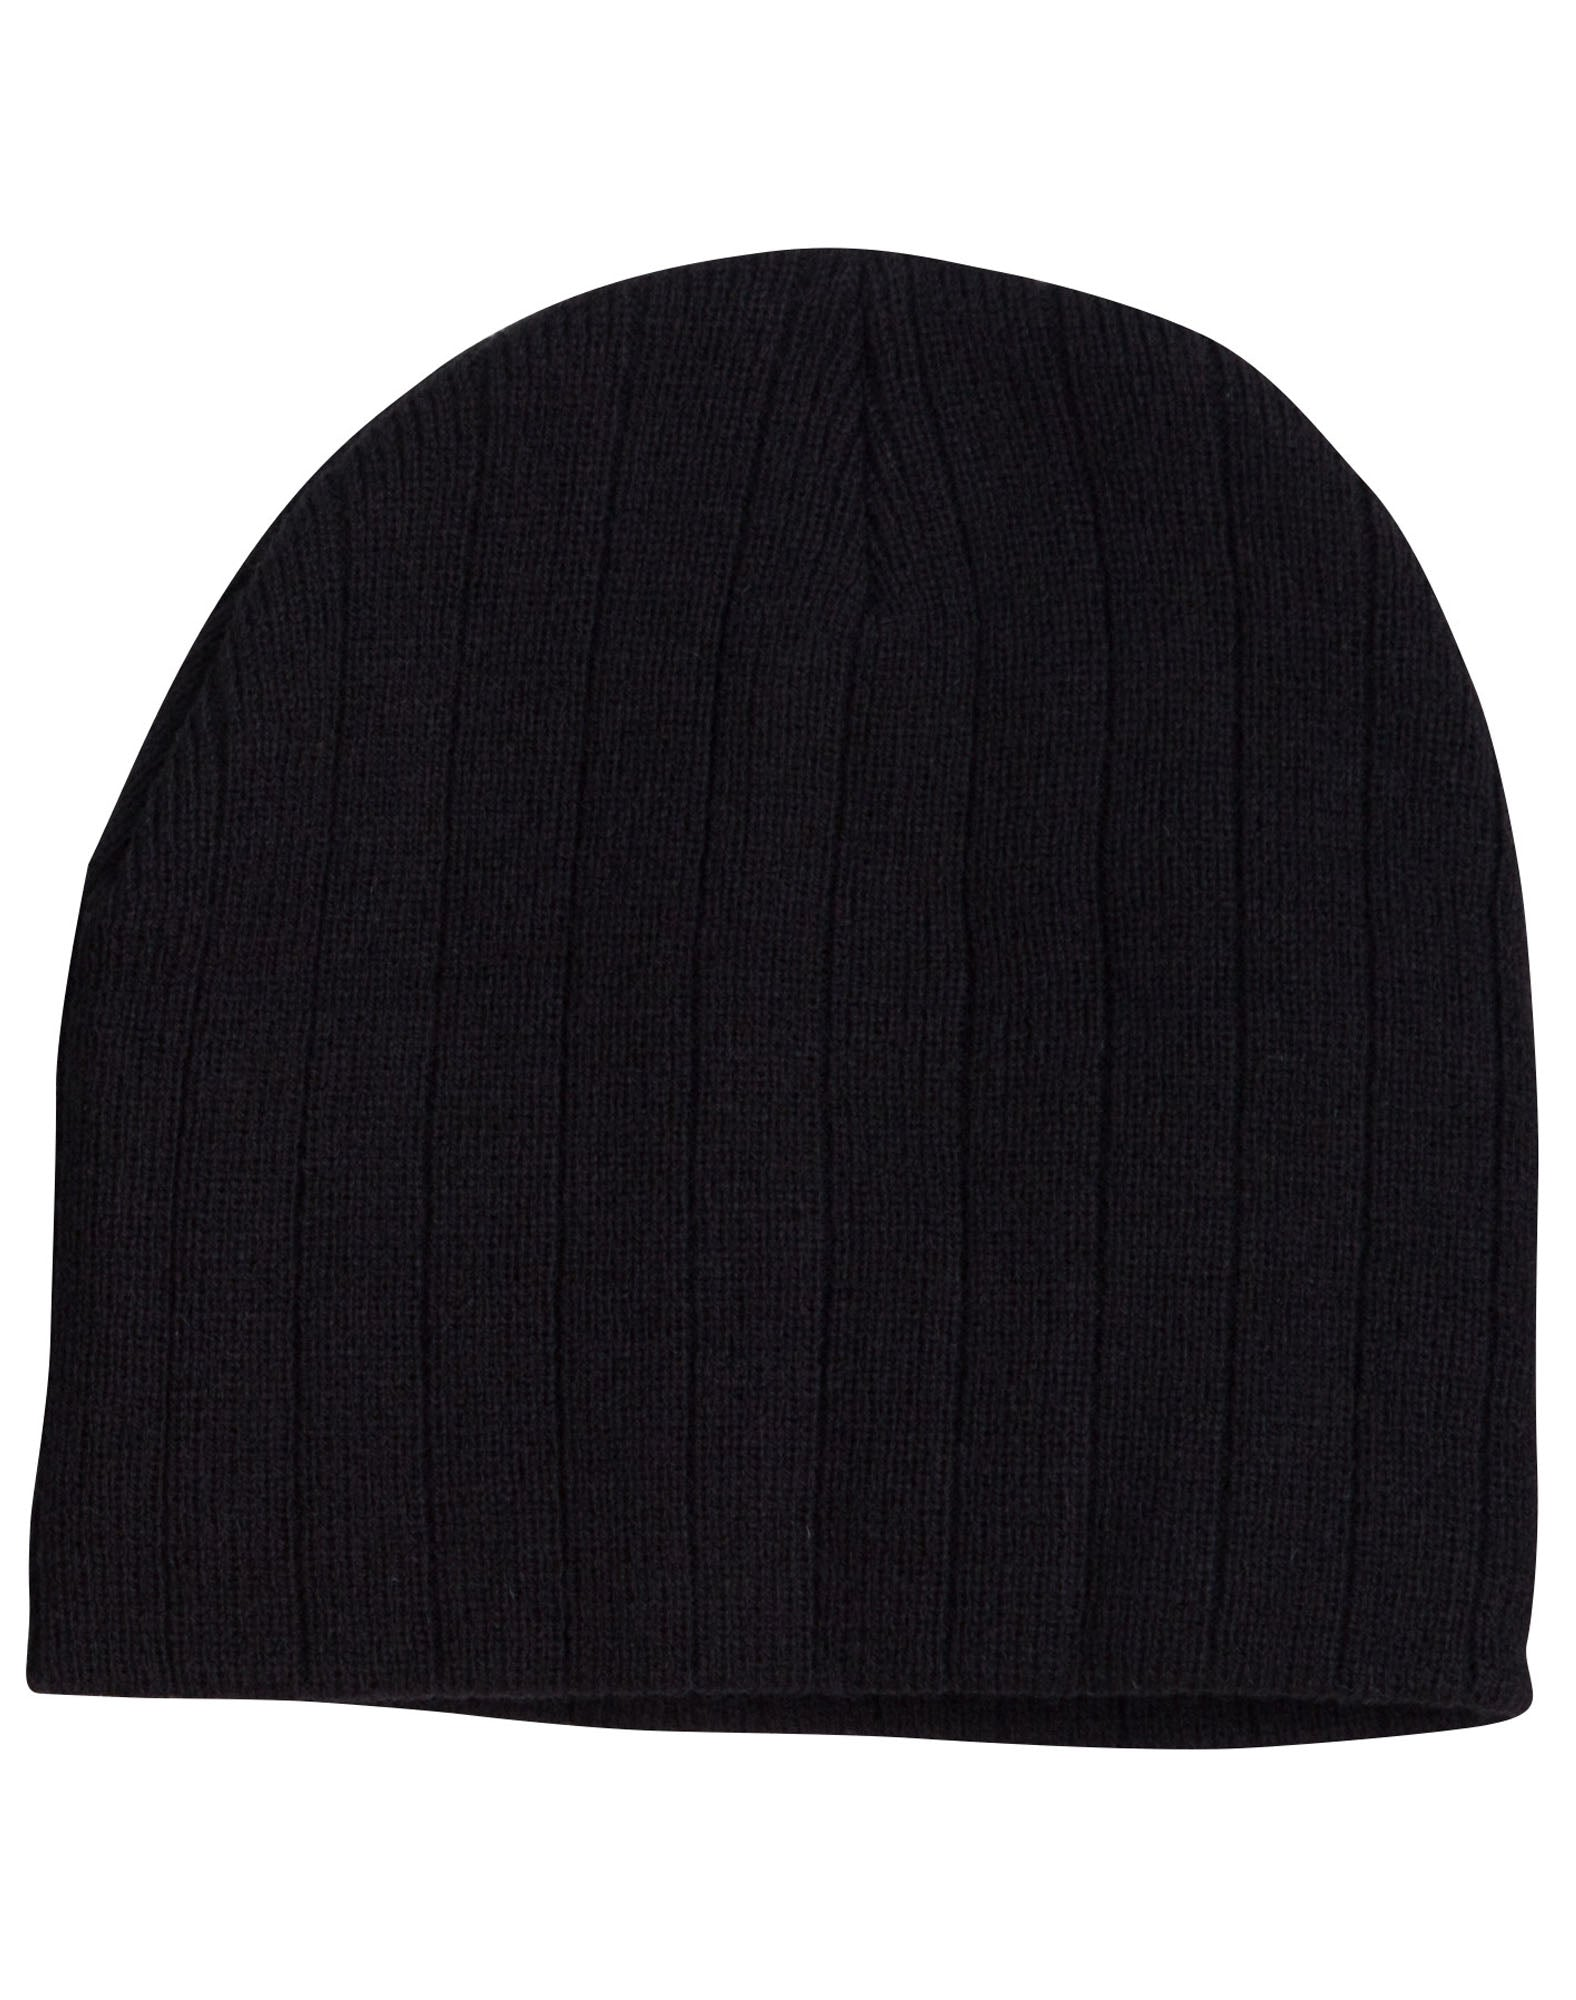 de7888f7239 Winning Spirit Cable Knit Beanie With Fleece Head Band Caps (CH64) – Budget  Workwear